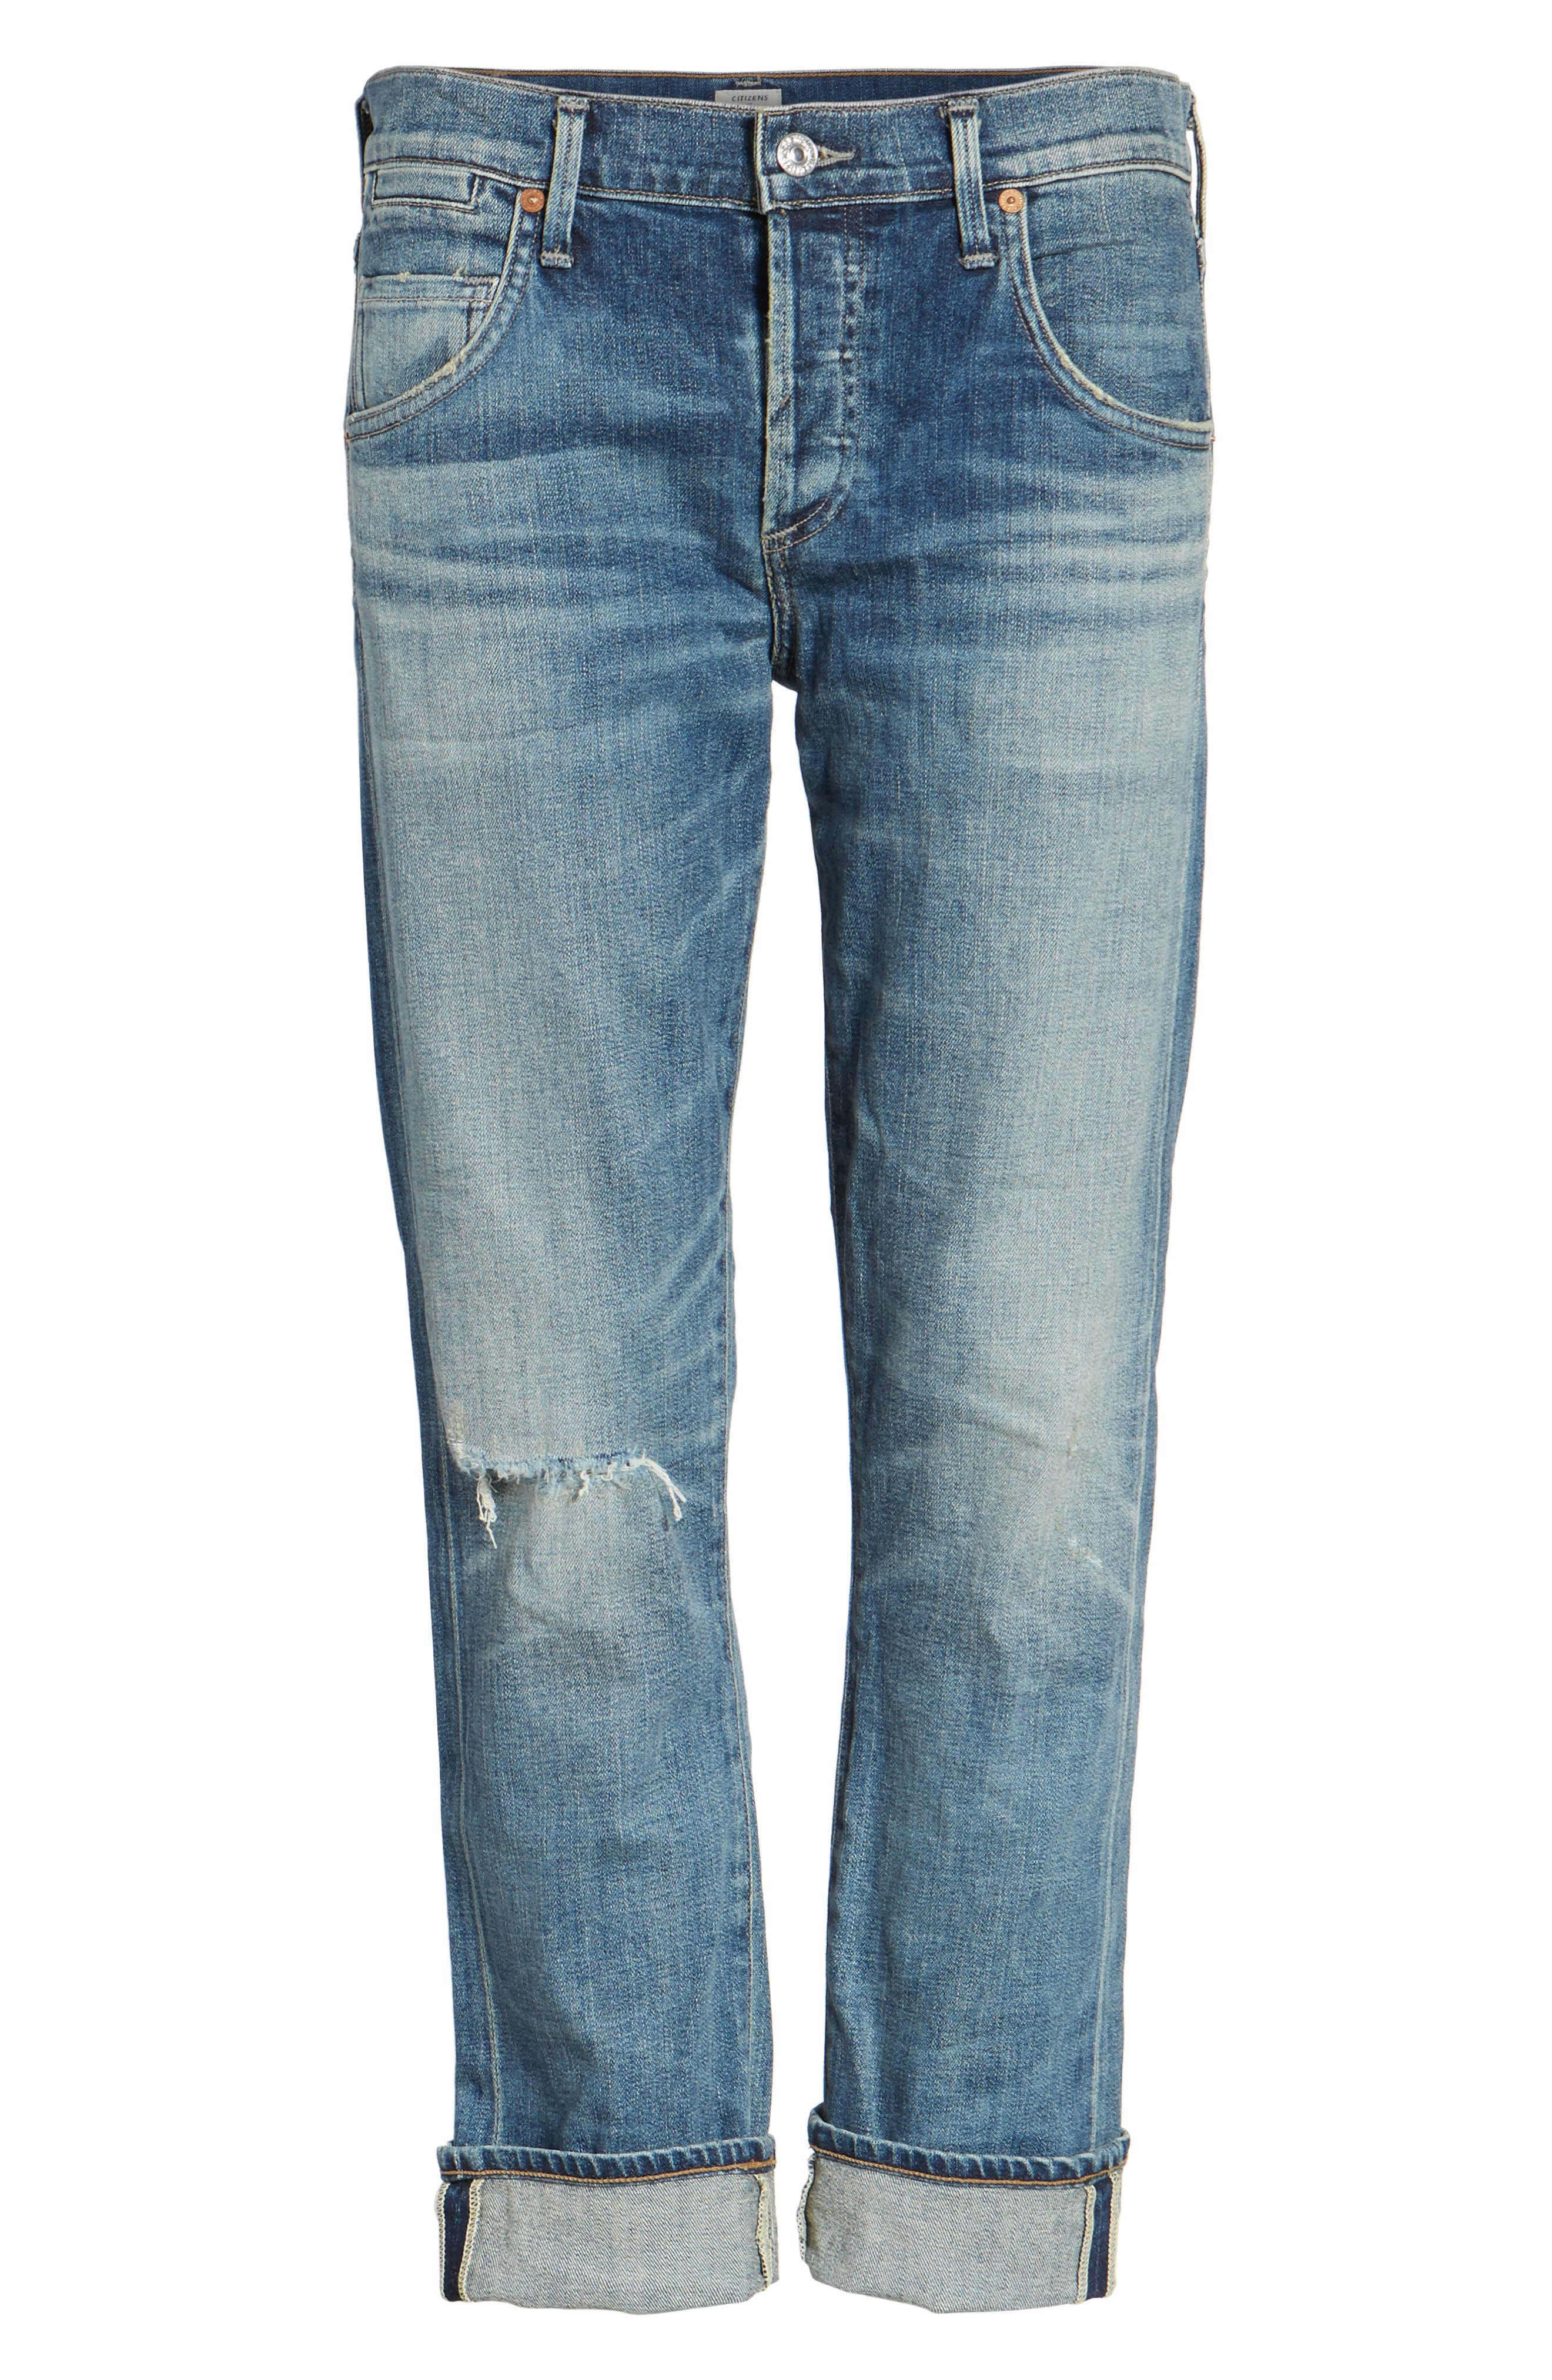 CITIZENS OF HUMANITY,                             'Emerson' Ripped Slim Boyfriend Jeans,                             Main thumbnail 1, color,                             469